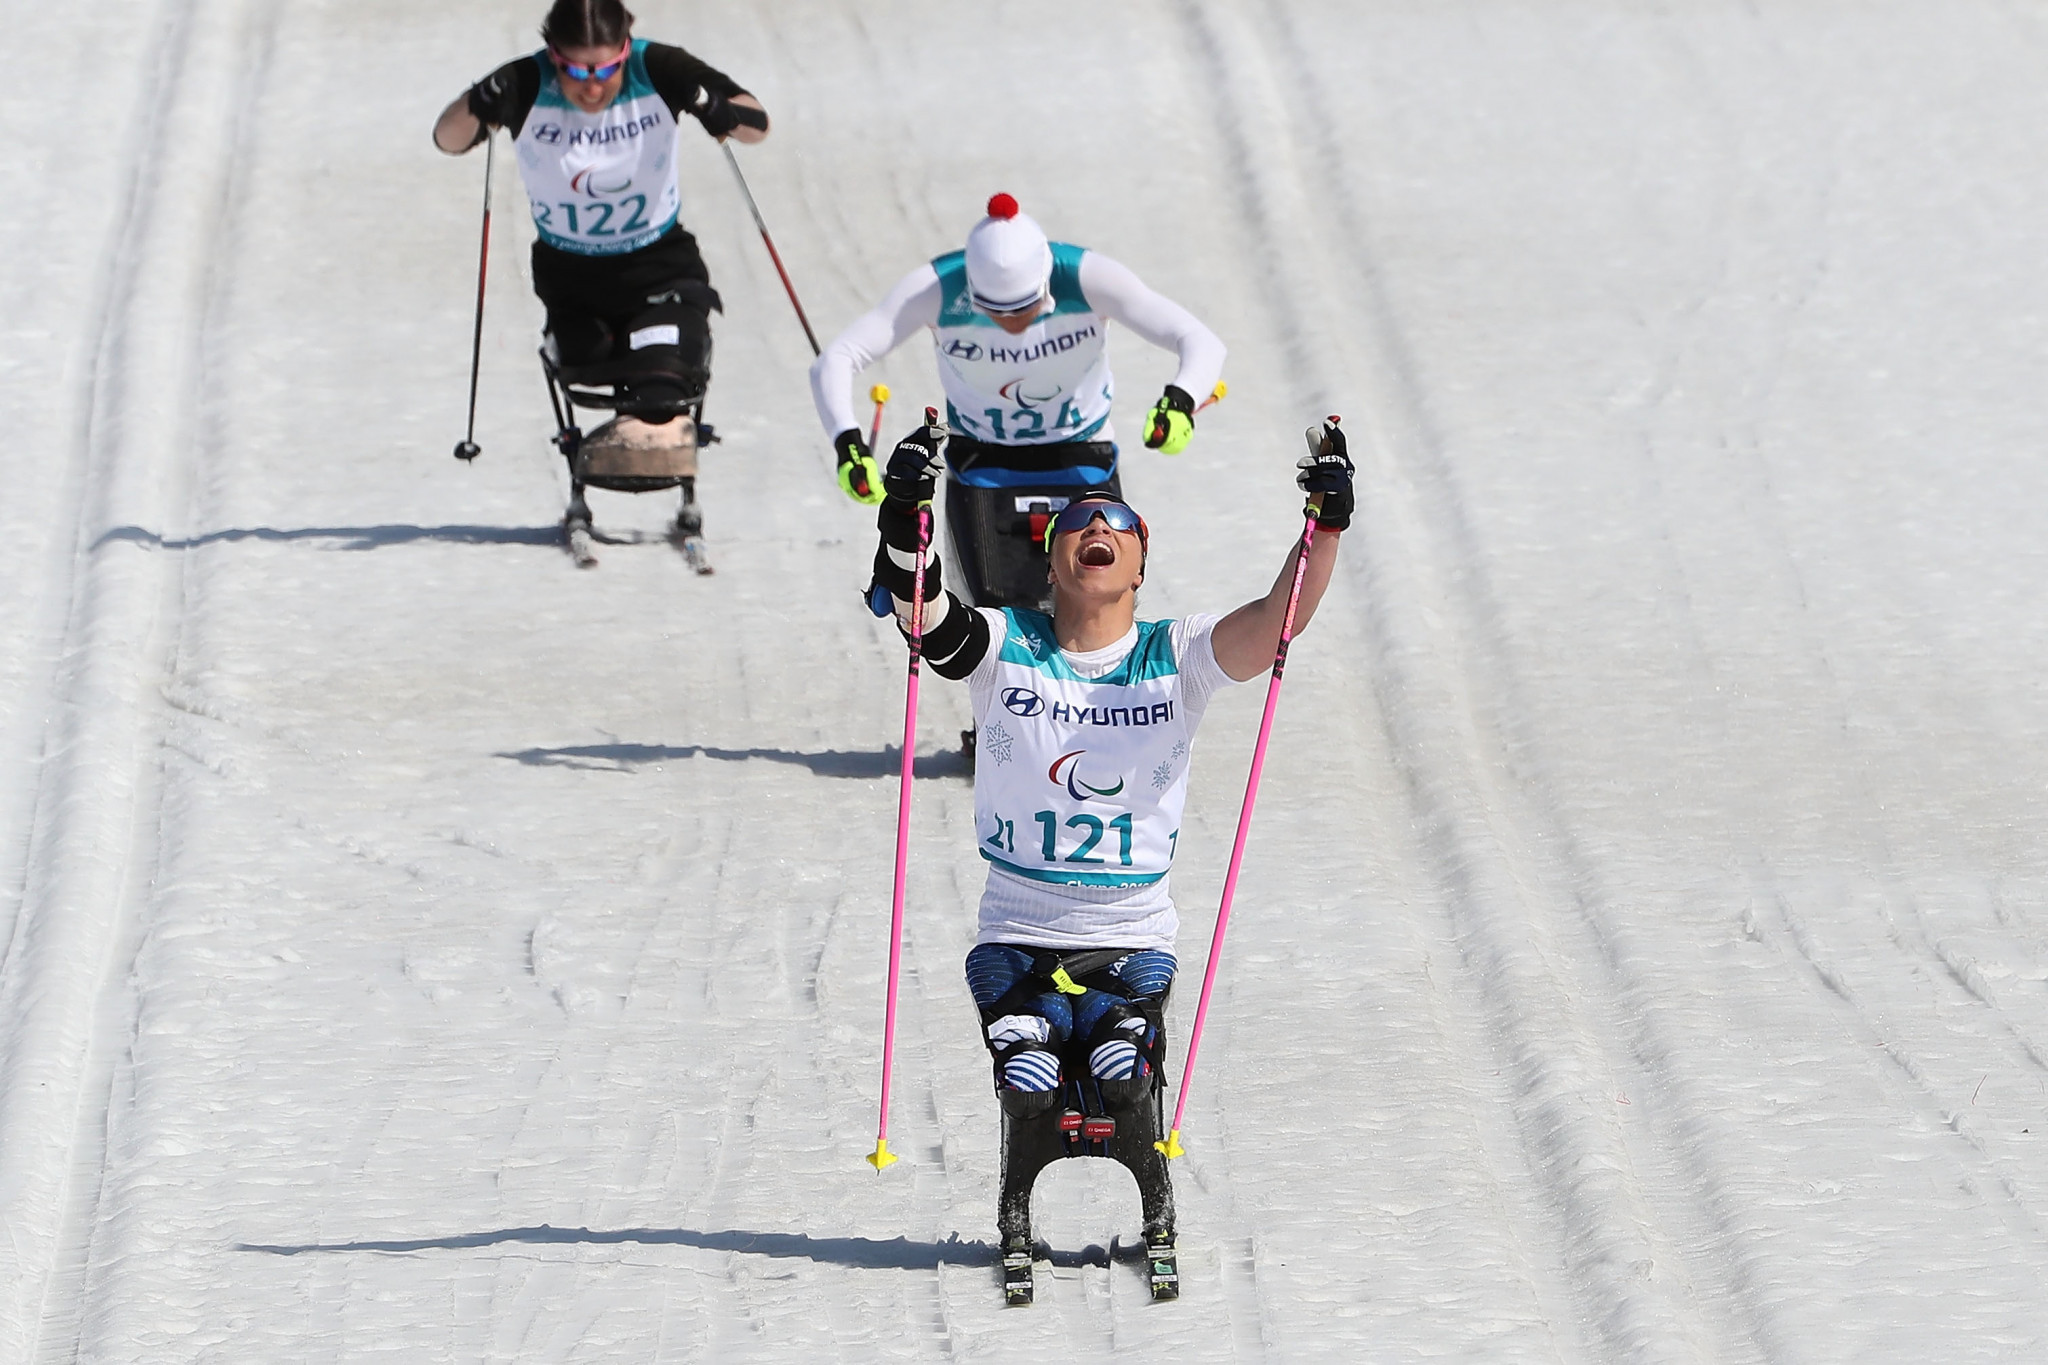 insidethegames is reporting LIVE from the Winter Paralympics in Pyeongchang